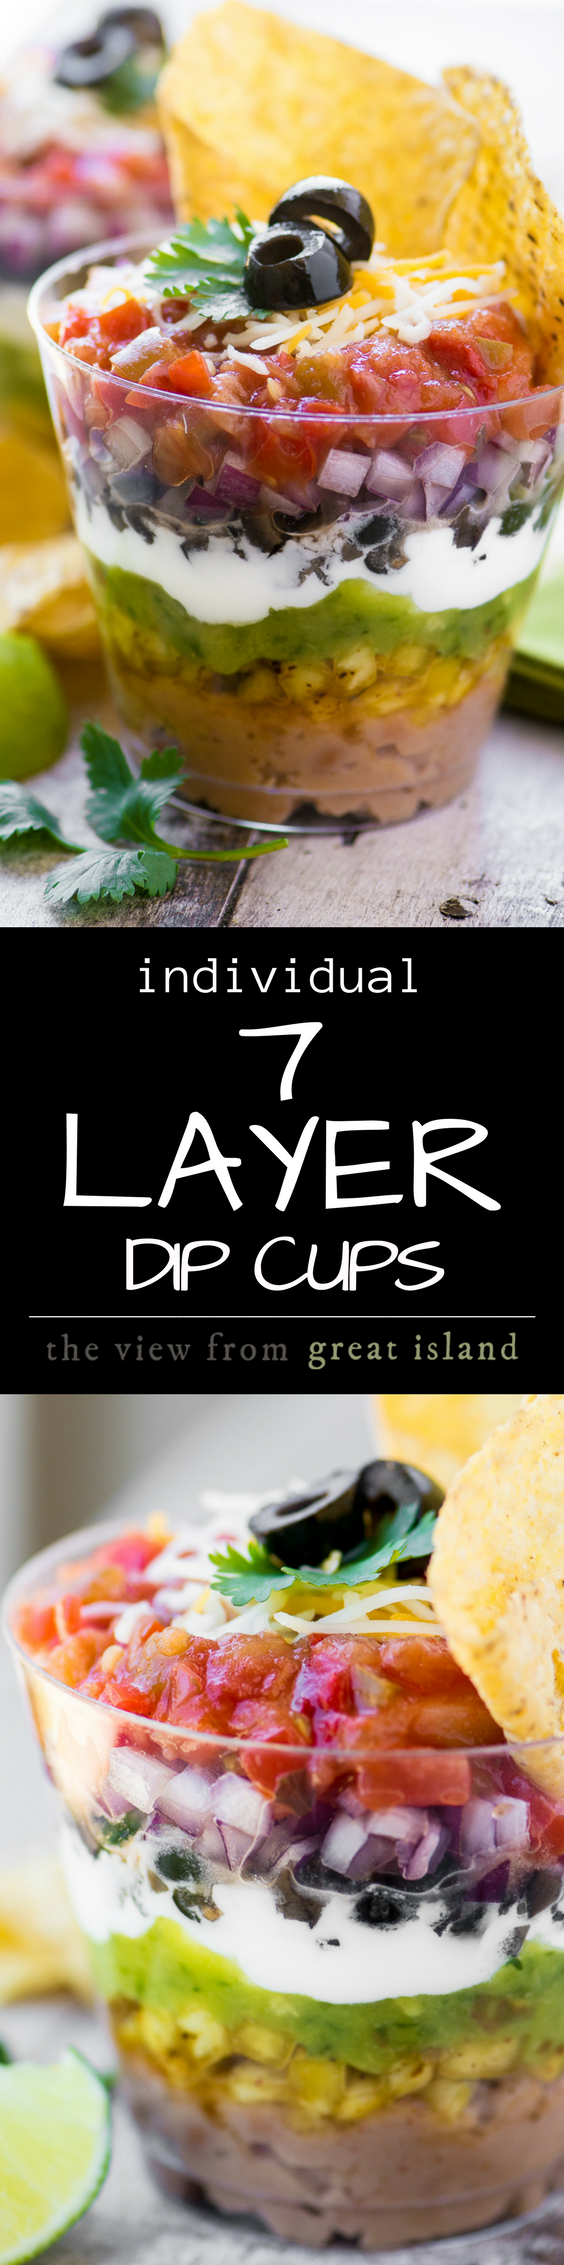 7 Layer Dip Cups ~ portable little appetizer stations layered up just like everybody's favorite Tex-Mex bean dip ~ so you can mingle and chow down at the same time ~ genius! | appetizers | 7 layer dips | dips | summer | rainbow |